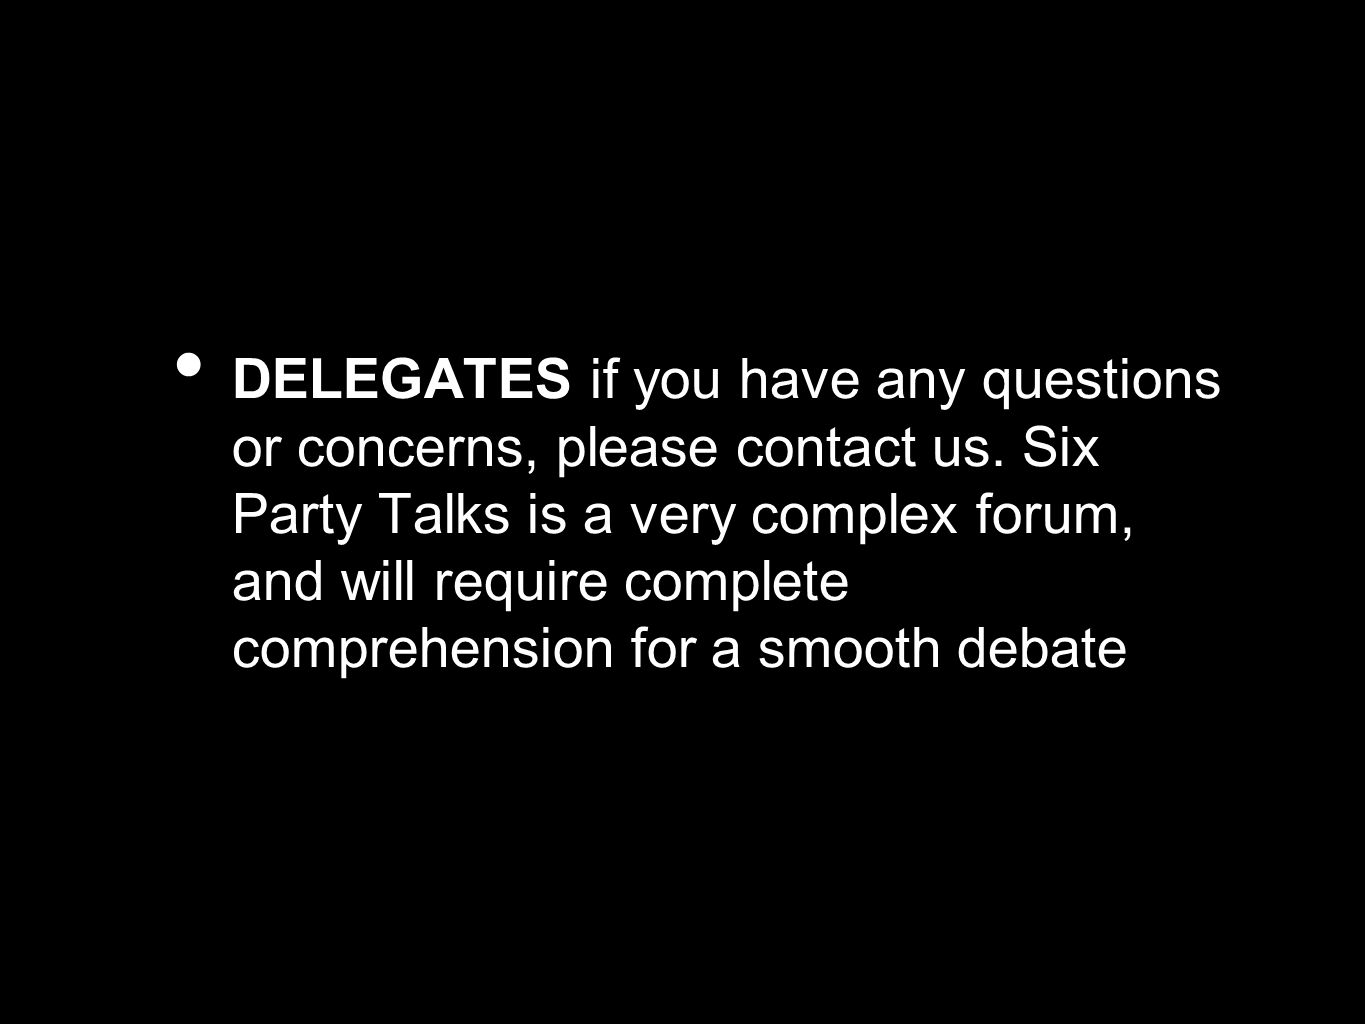 DELEGATES if you have any questions or concerns, please contact us. Six Party Talks is a very complex forum, and will require complete comprehension f